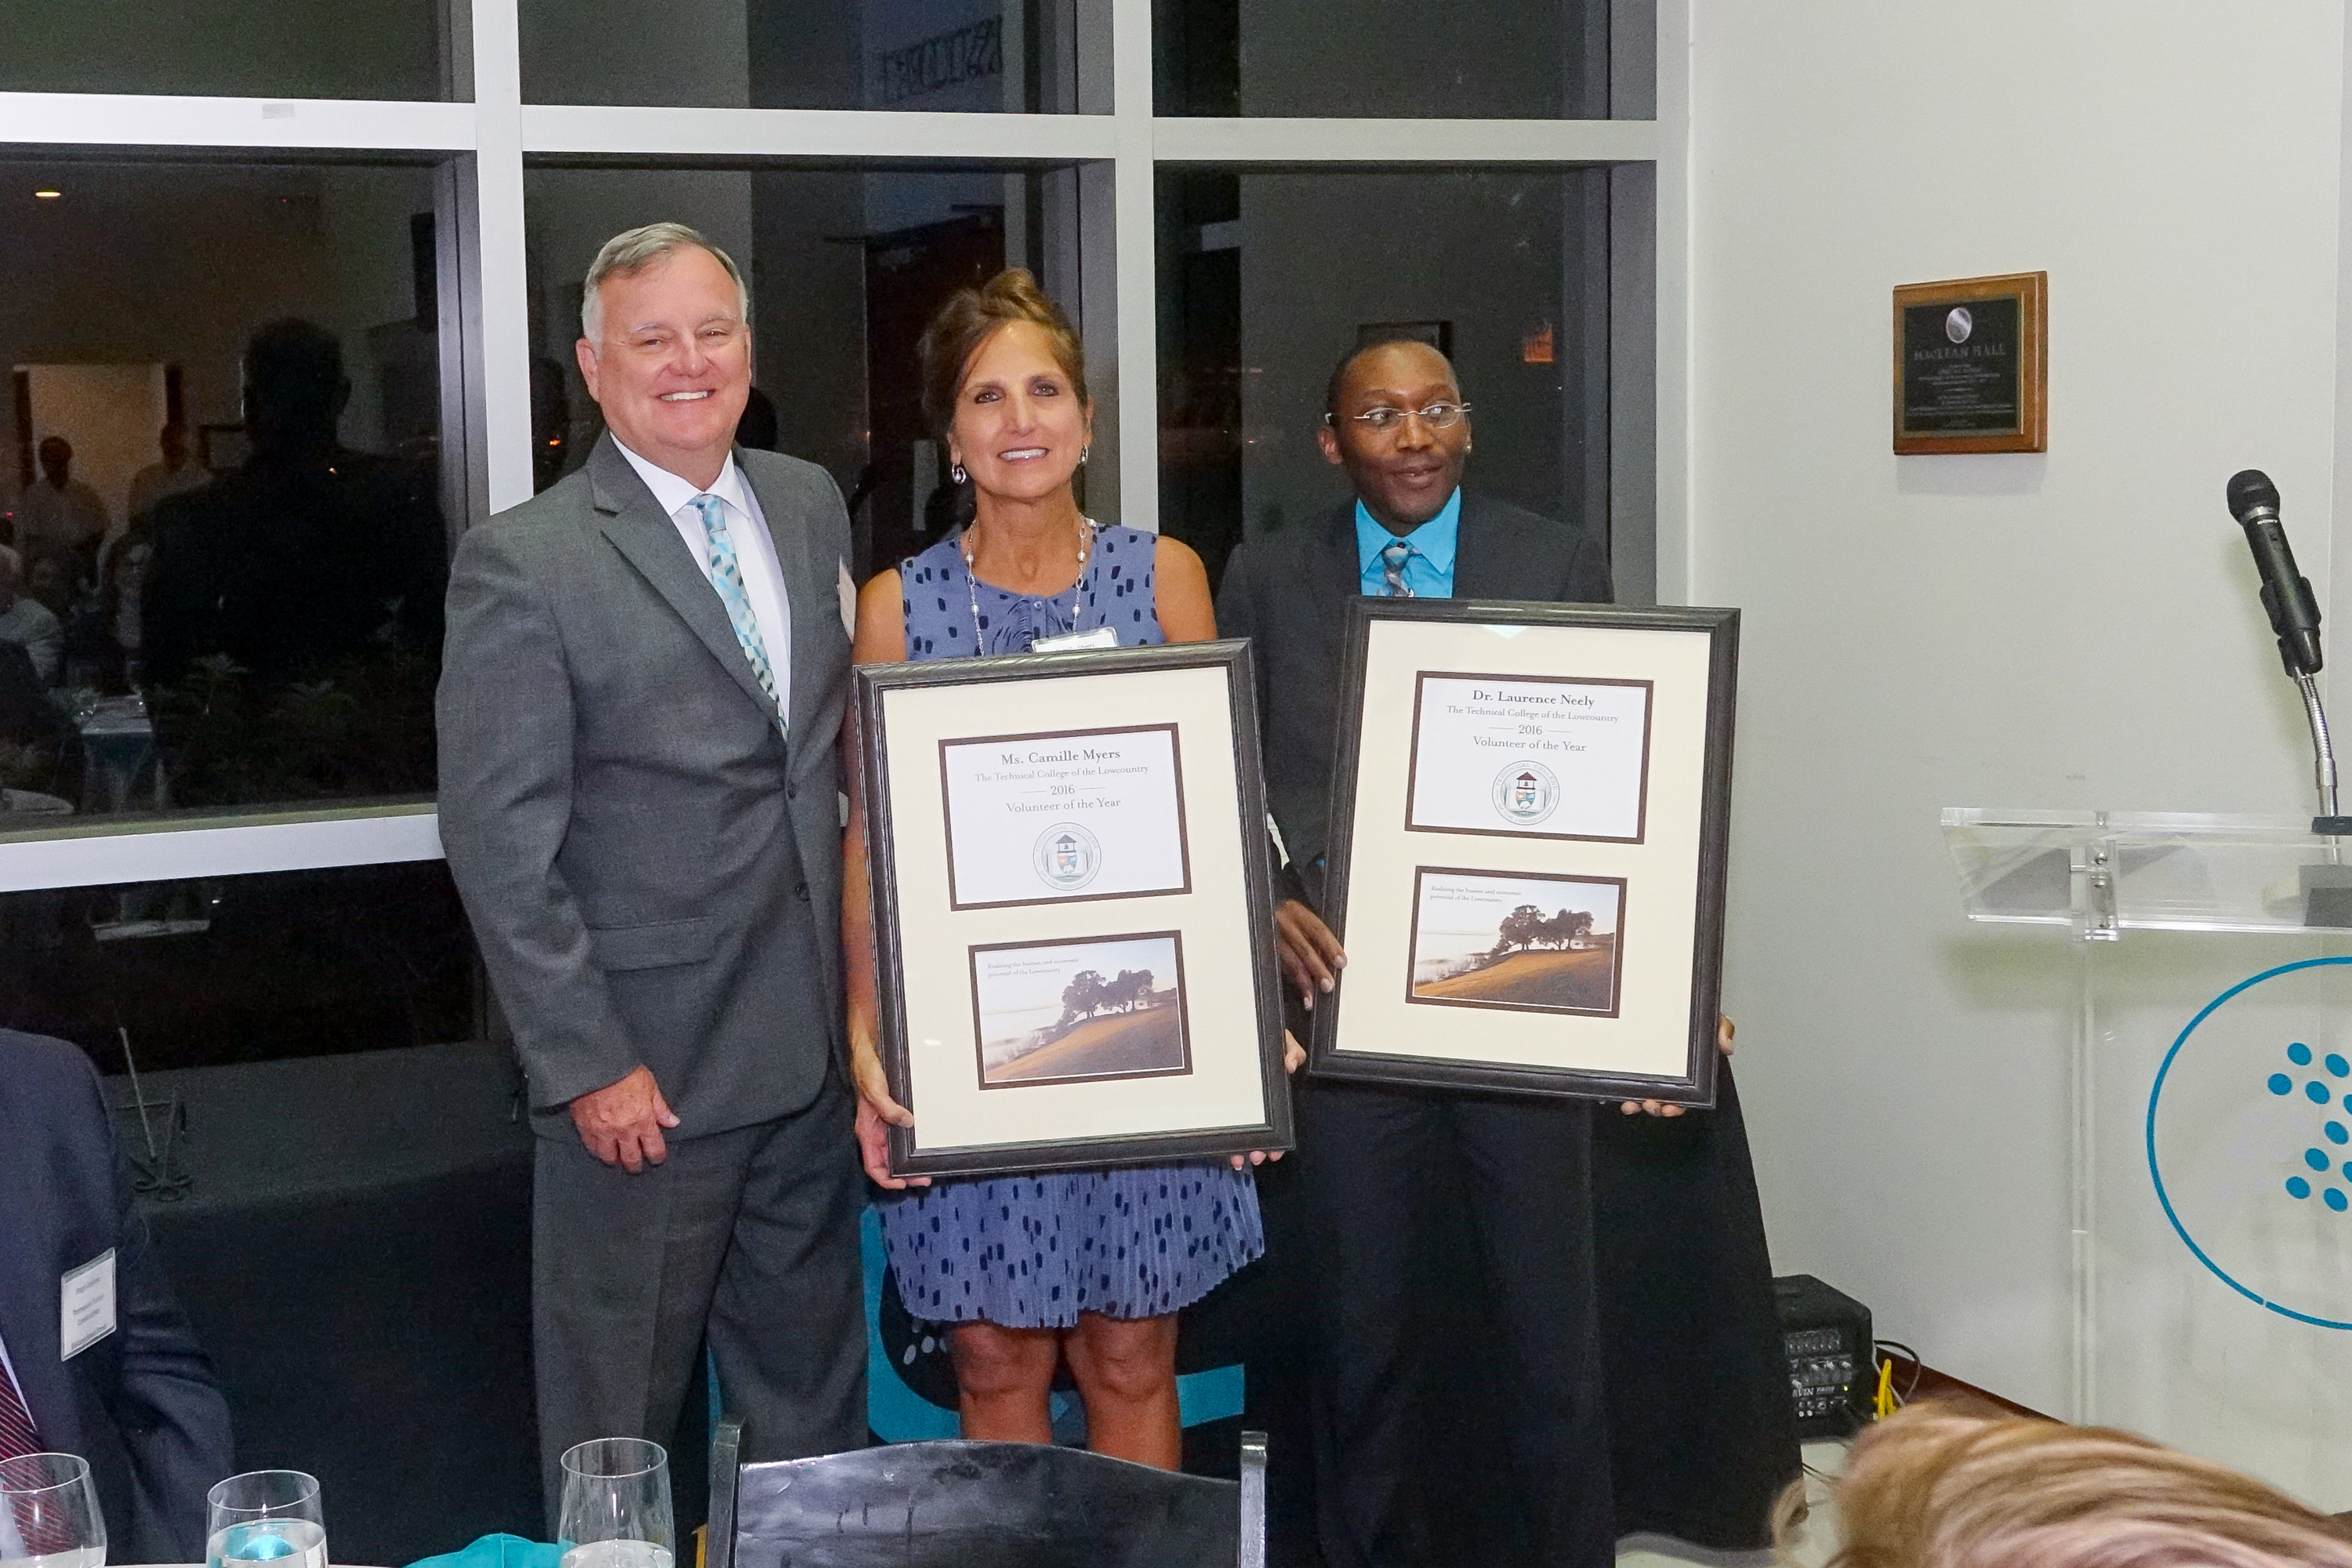 Photo-Camille Myers, Dr. Laurence Neely-TCL Volunteers of the Year